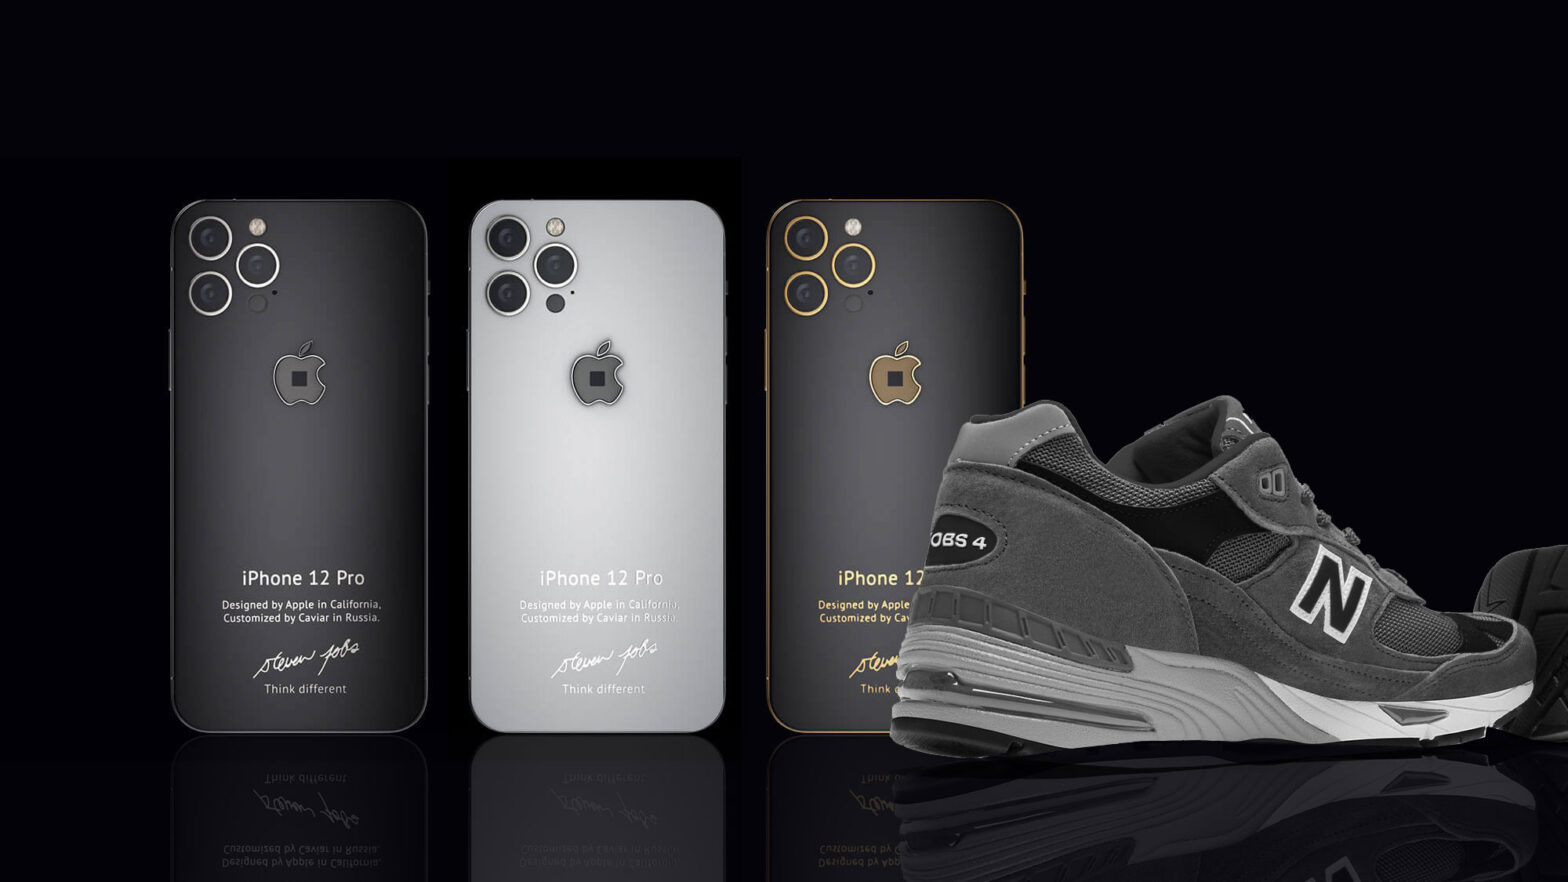 Caviar iPhone 12 Jobs 4 Smartphone